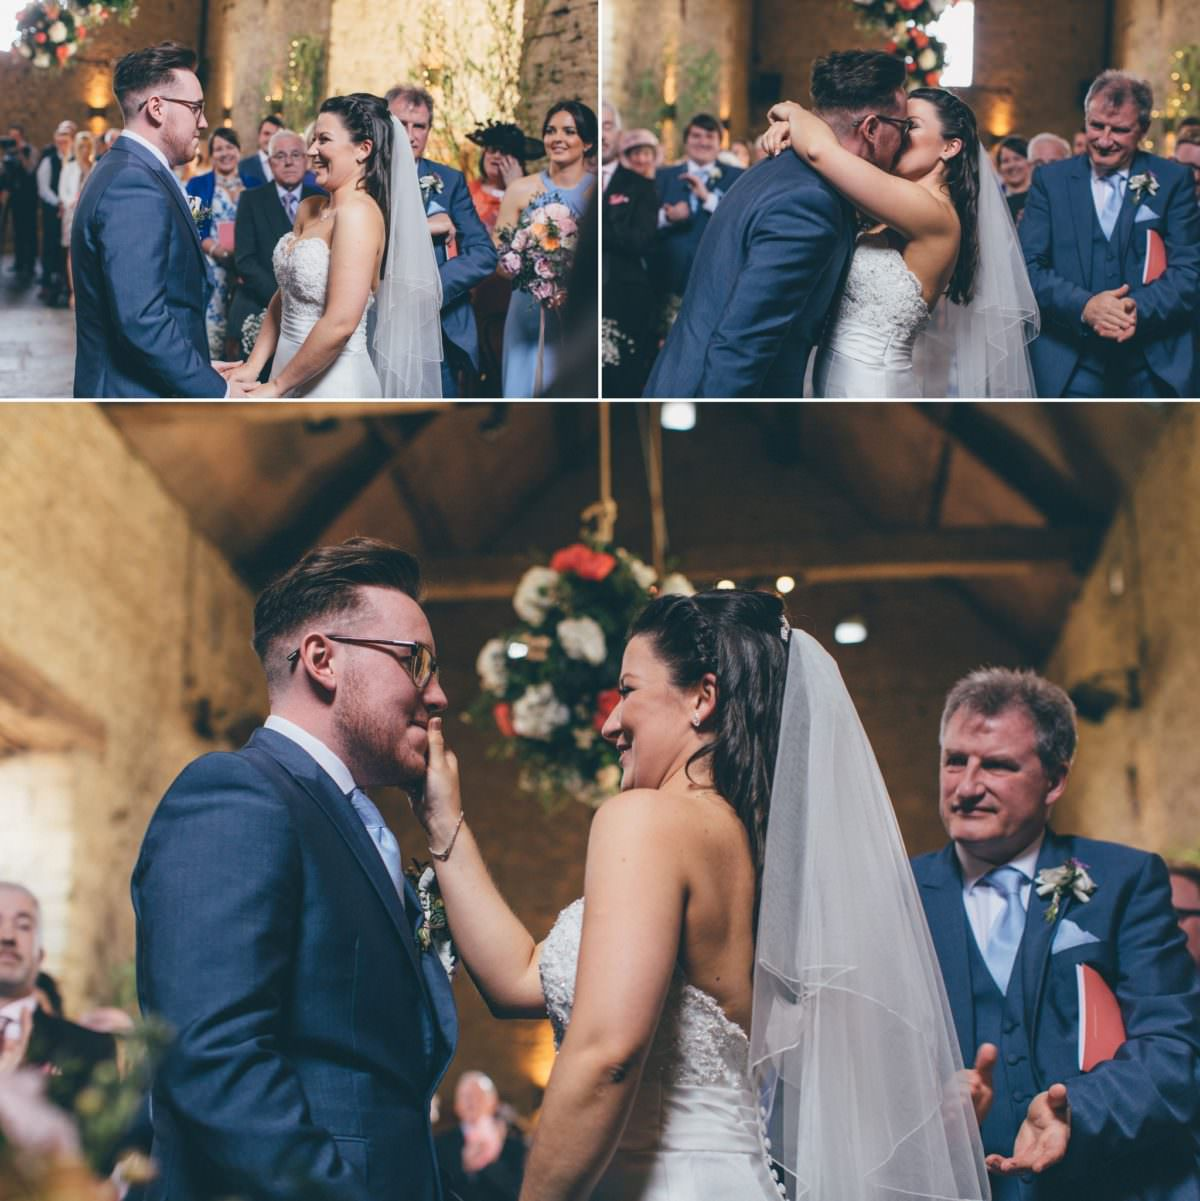 cripps_barn_gloucesterhsire_welsh_wedding_photographer_rachel_lambert_photography_jordan_amy_ 60